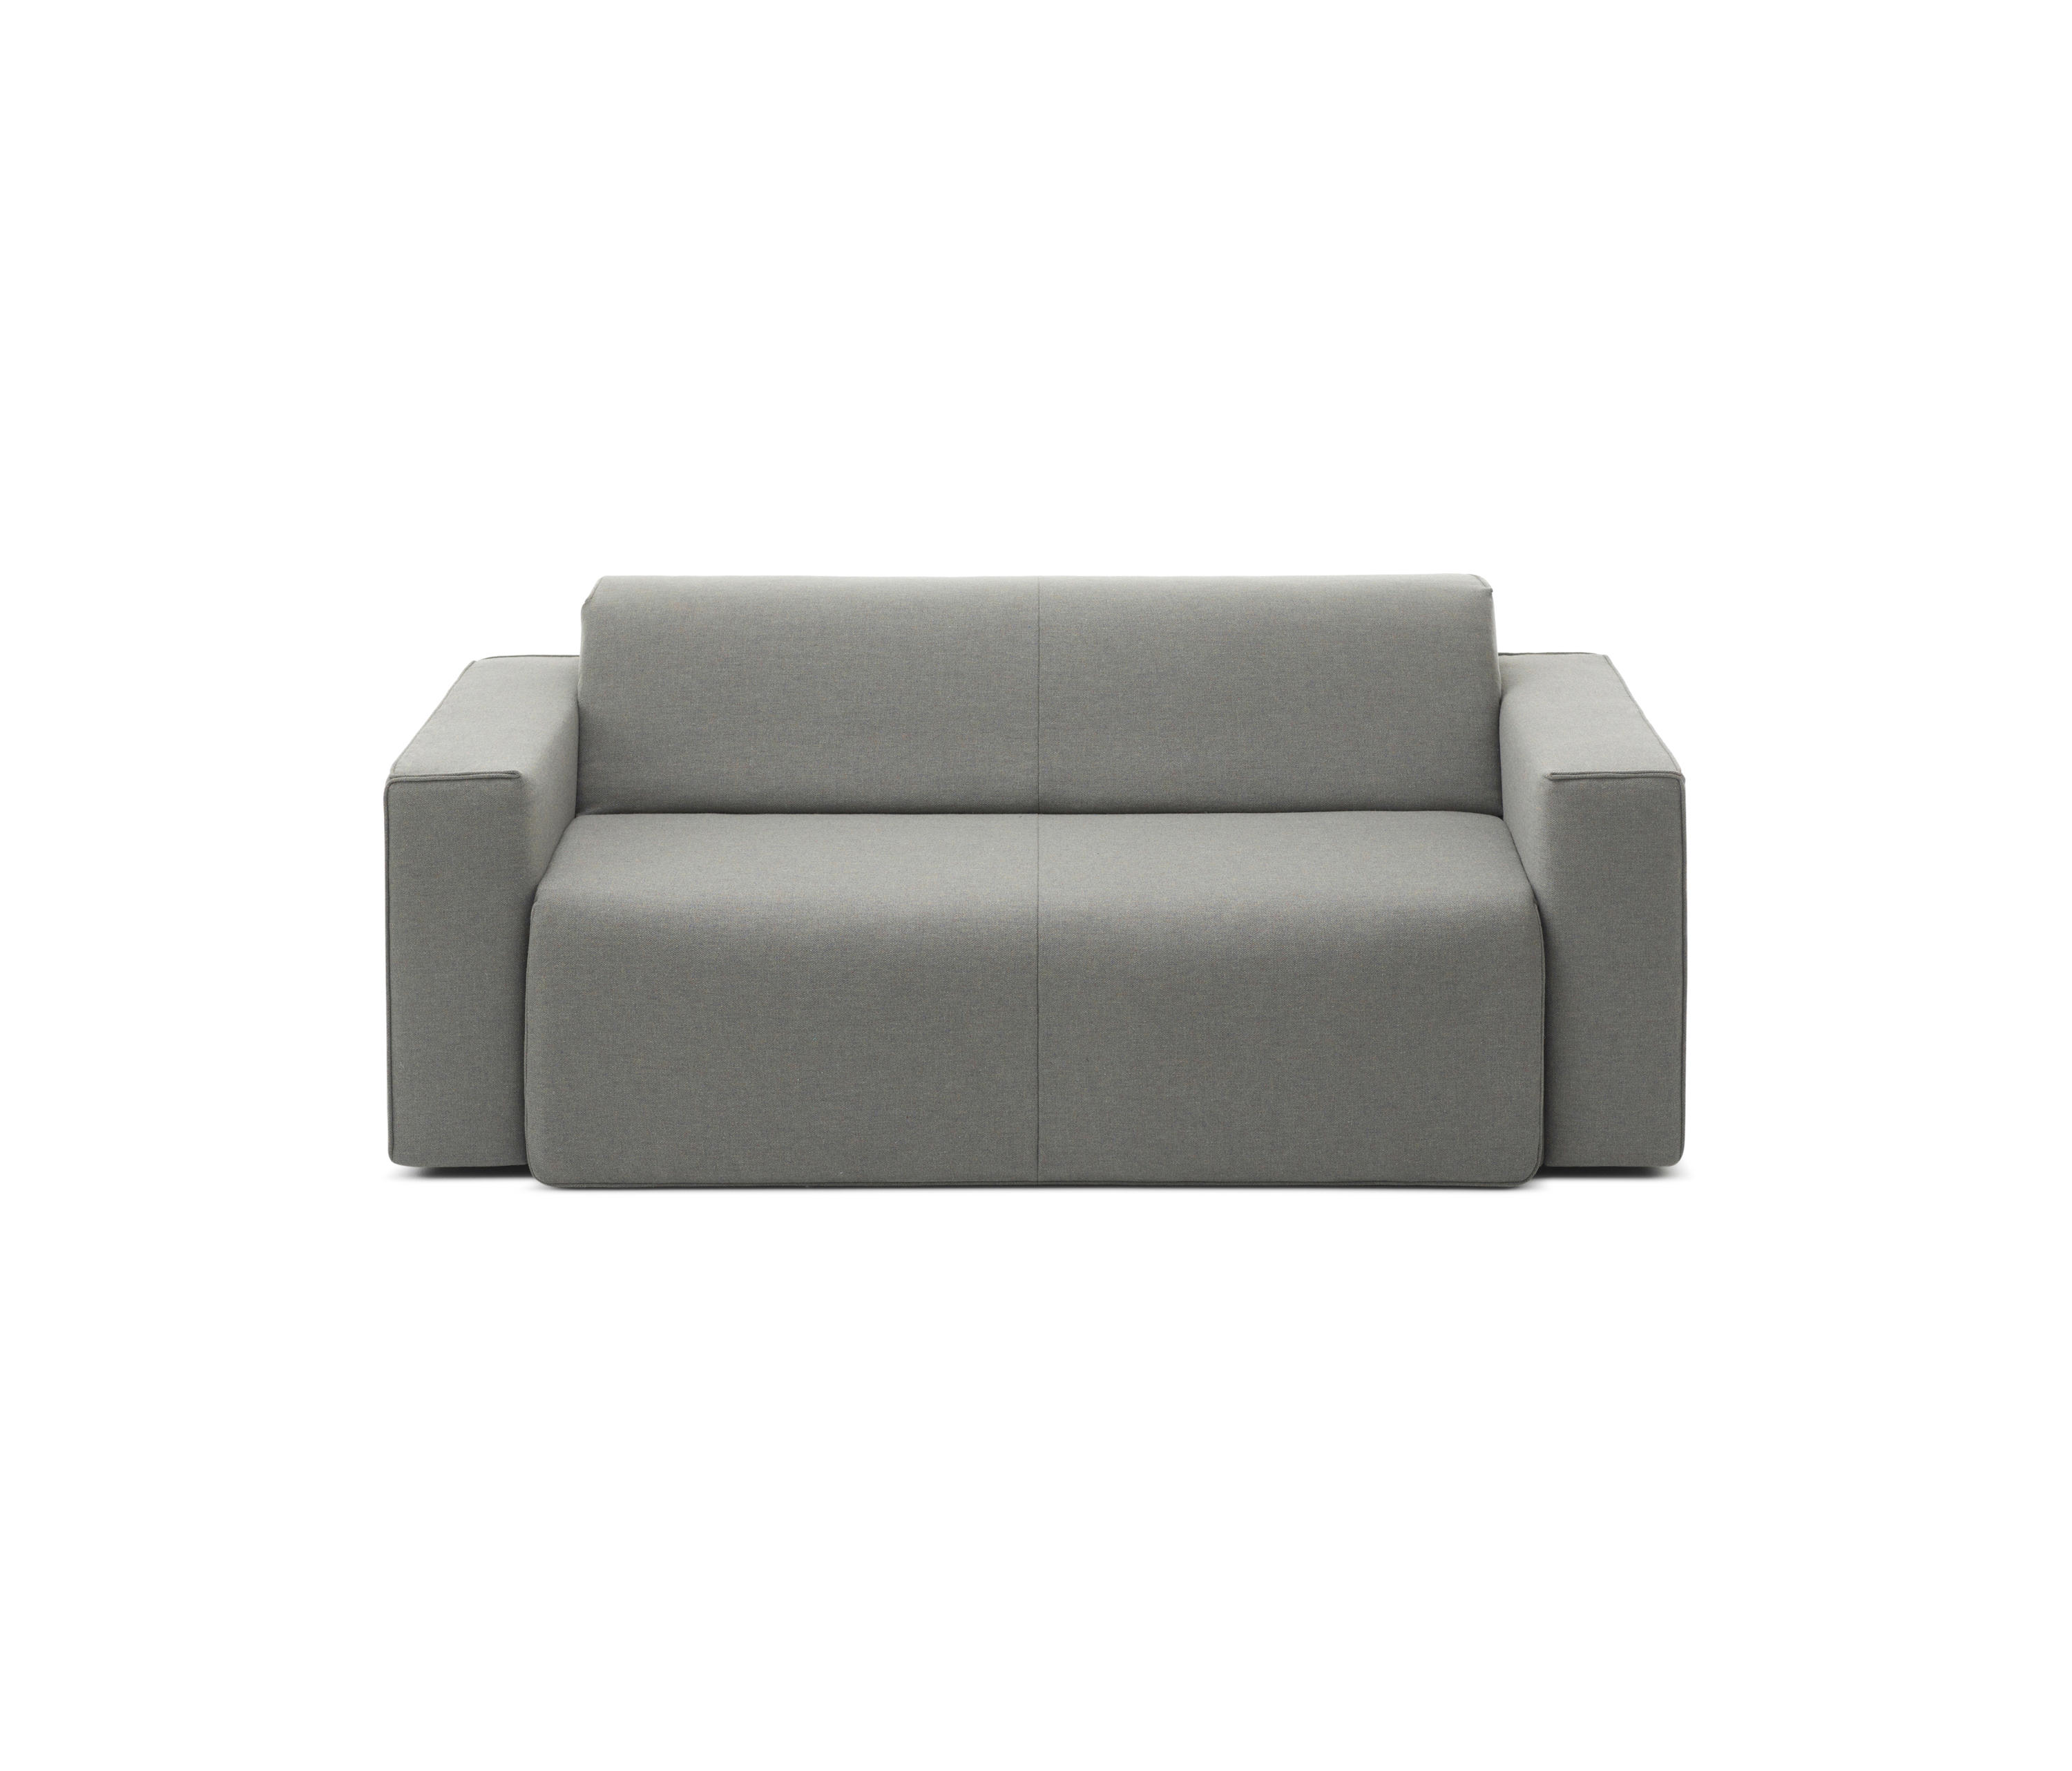 HIPPO SOFA BED - Sofas from Extraform | Architonic